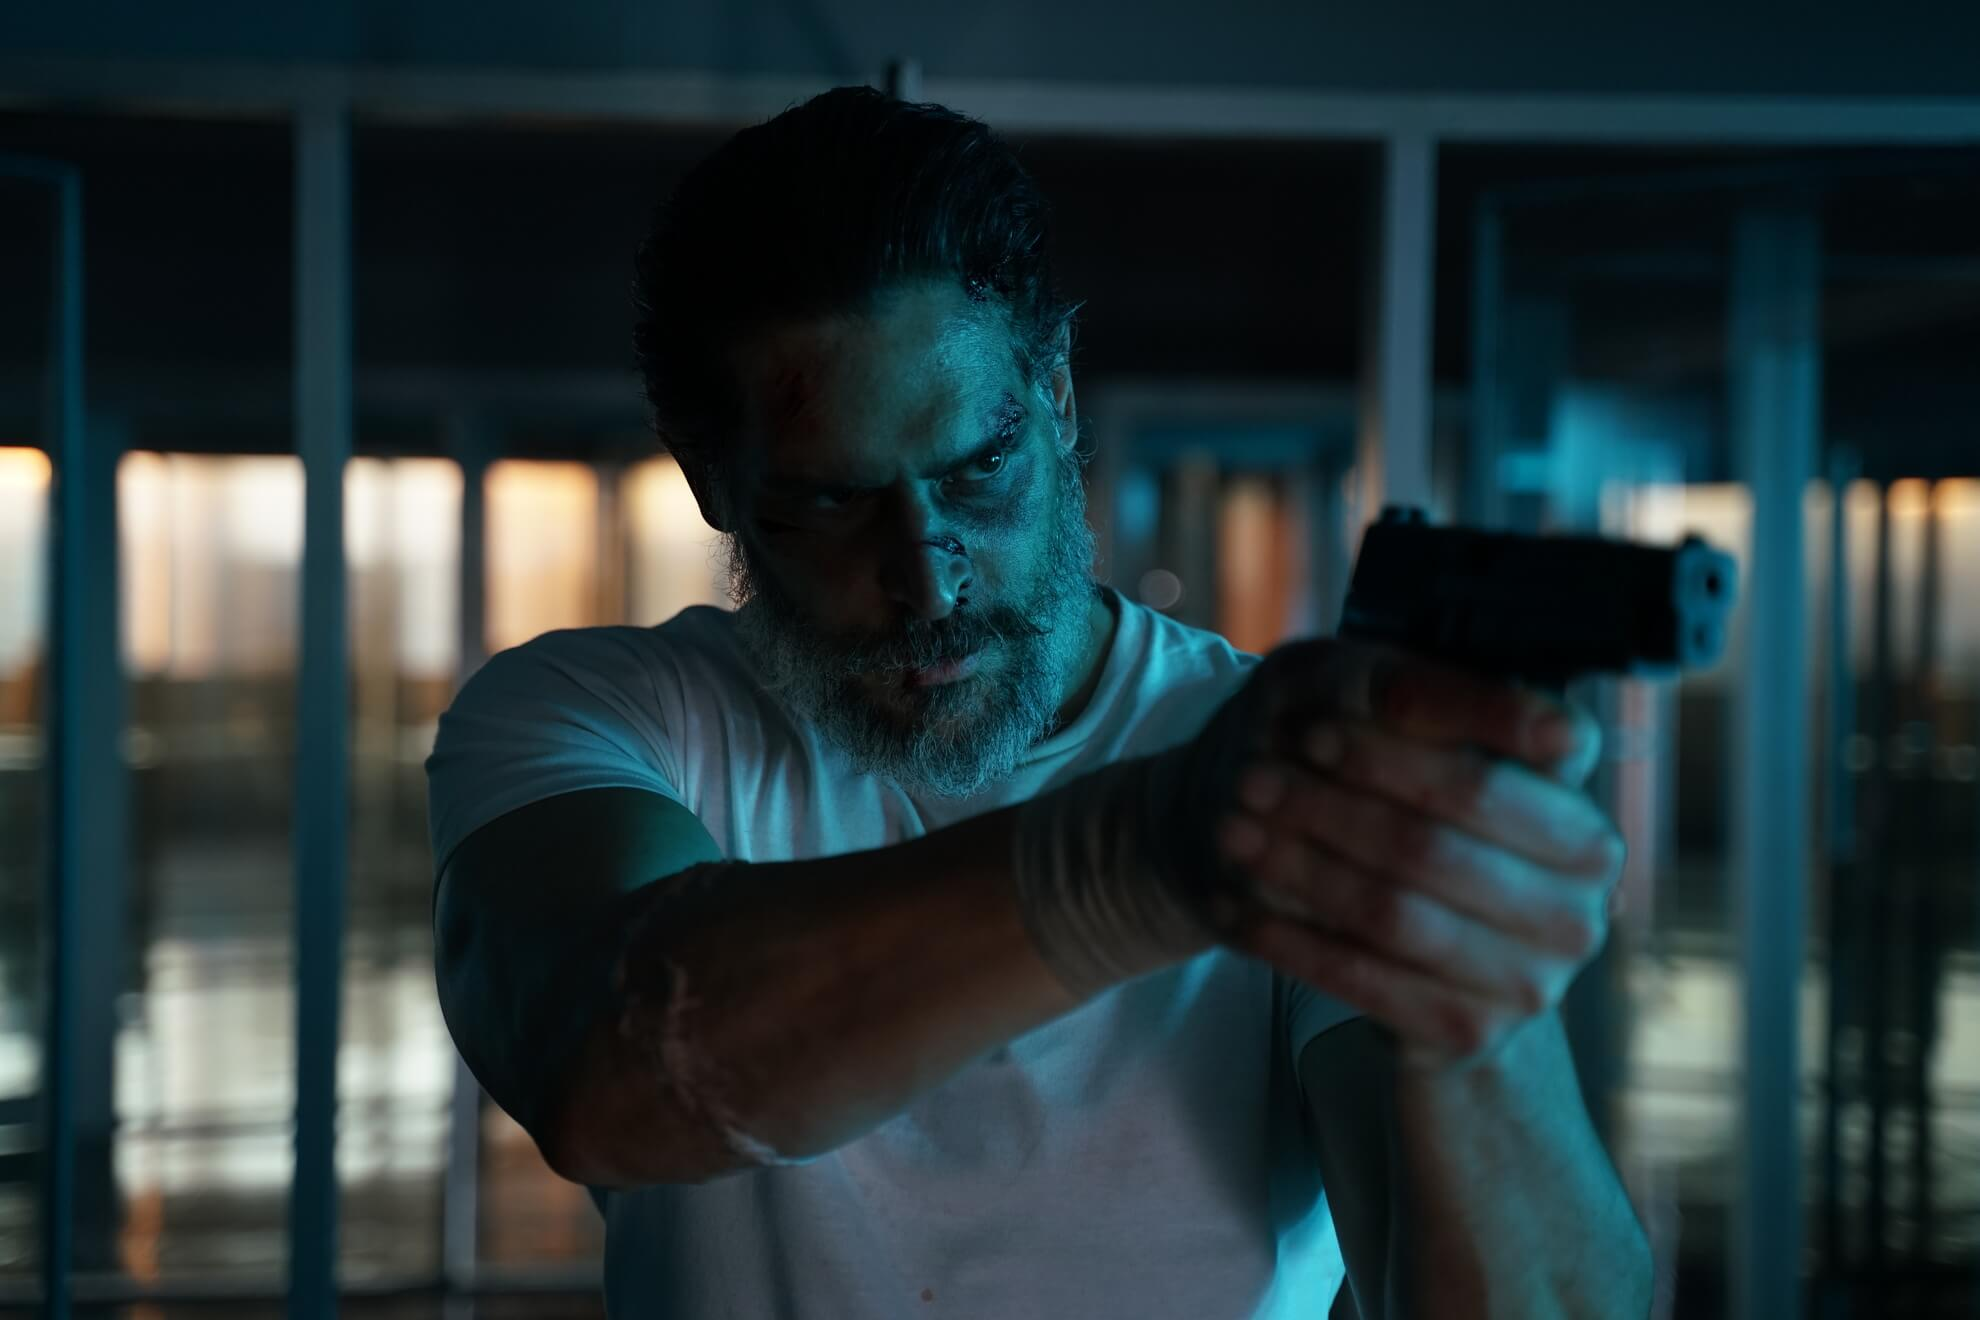 oe Manganiello as Max Fist in the actionthriller film Archenemy